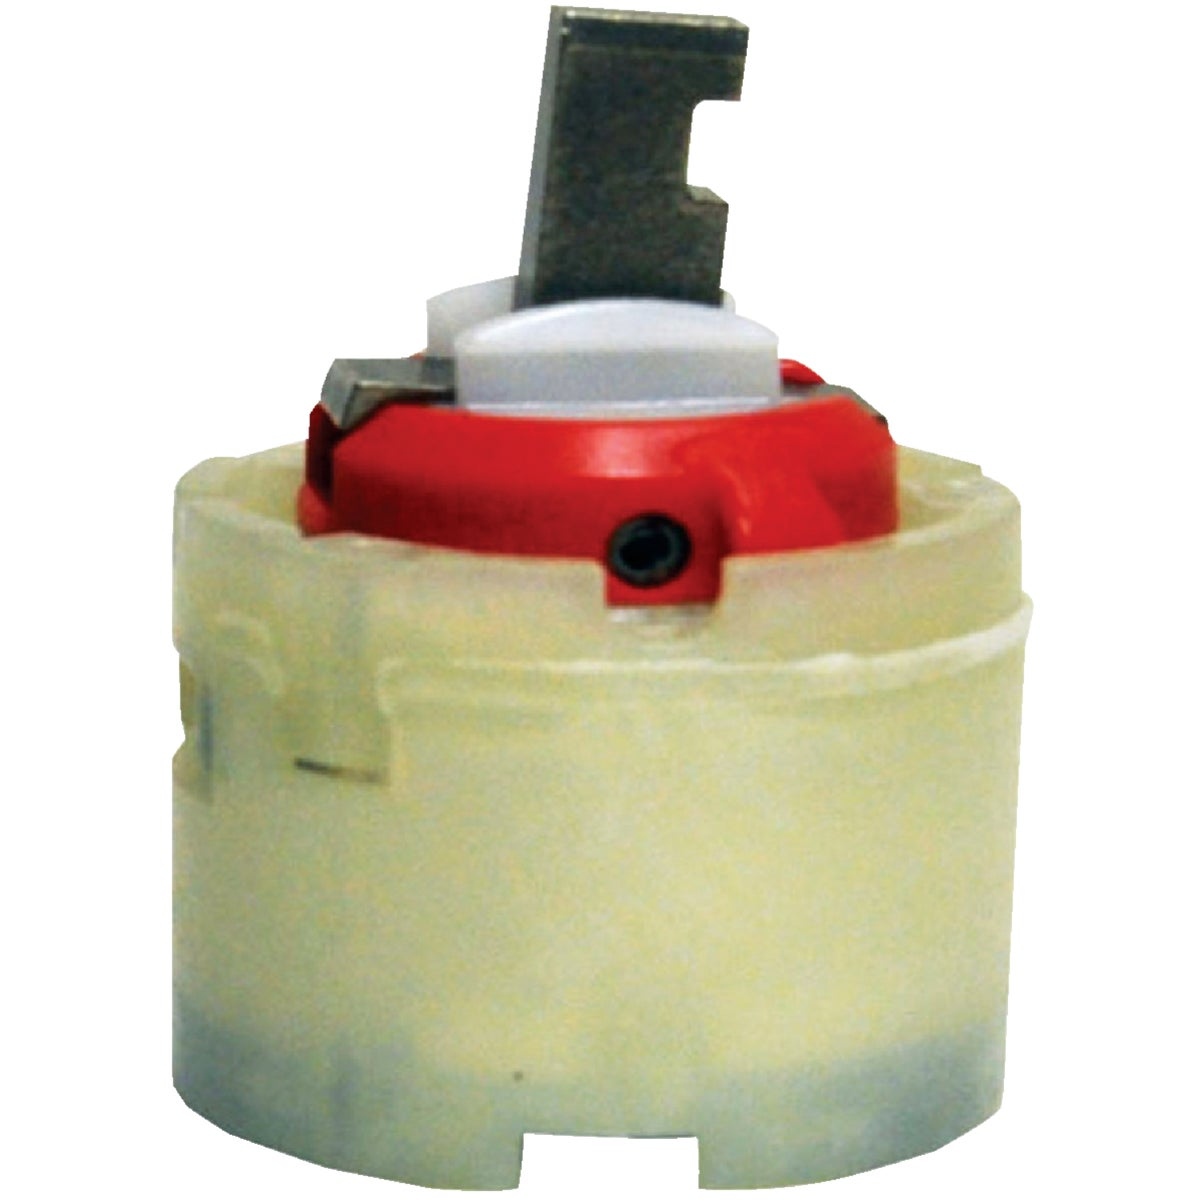 AM STD CERAMIC CARTRIDGE - 10468 by Danco Perfect Match